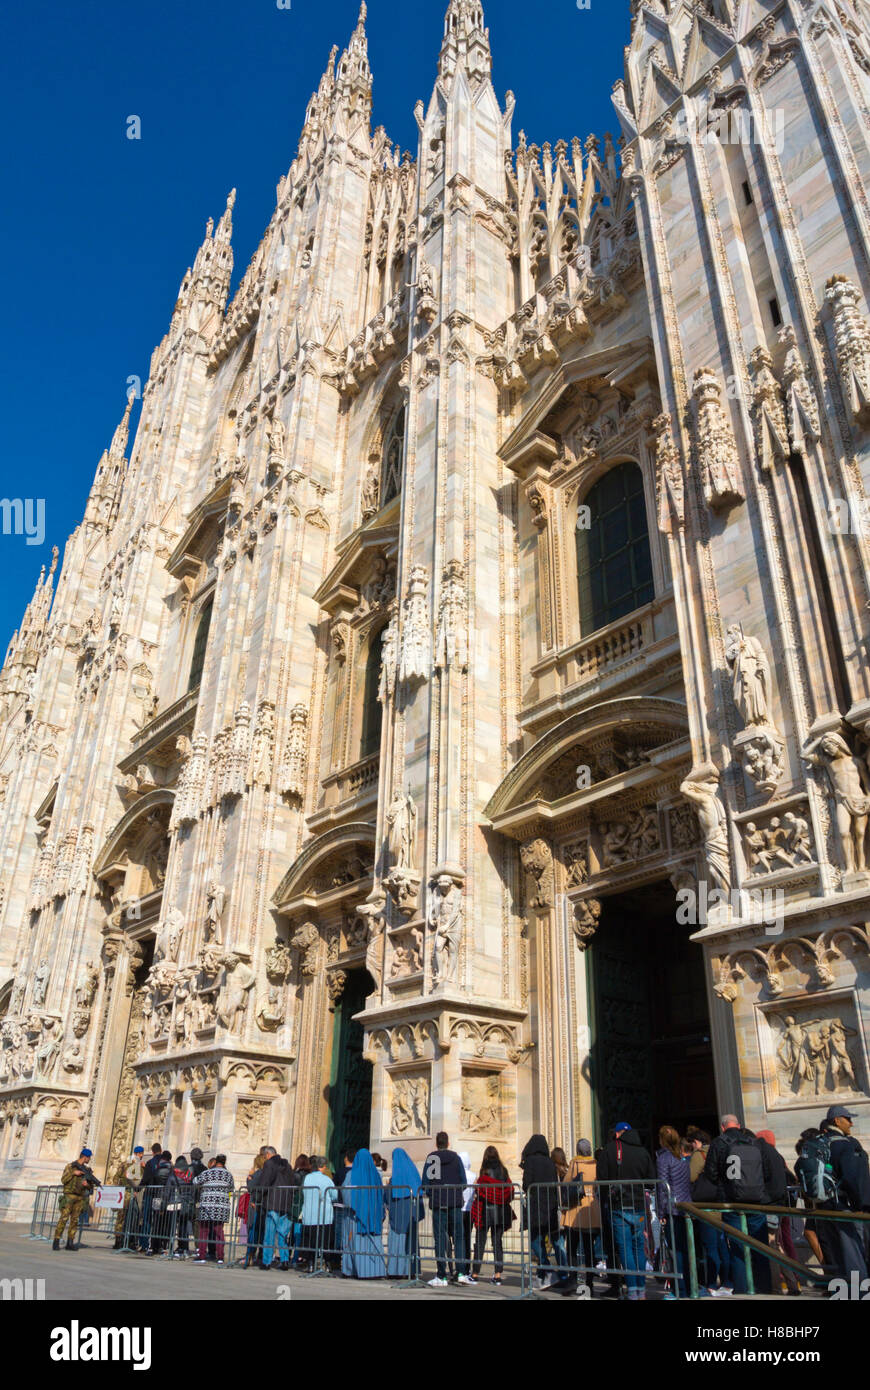 Queue to the Duomo, the cathedral church, Piazza del Duomo, Milan, Lombardy, Italy - Stock Image